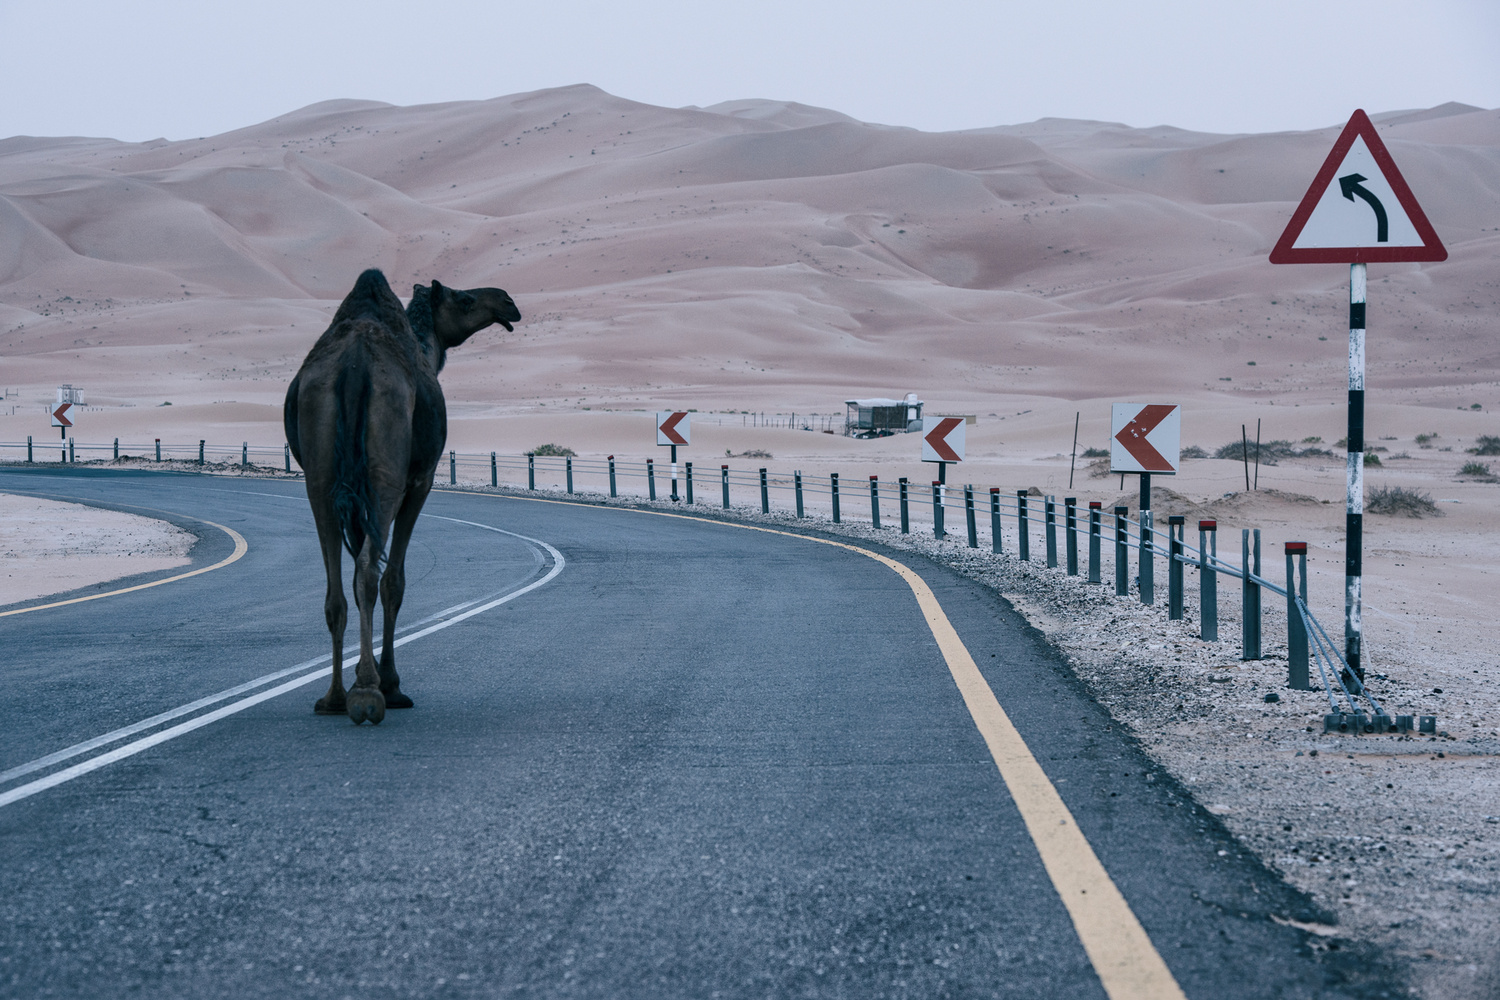 Humps Ahead by Rob Work